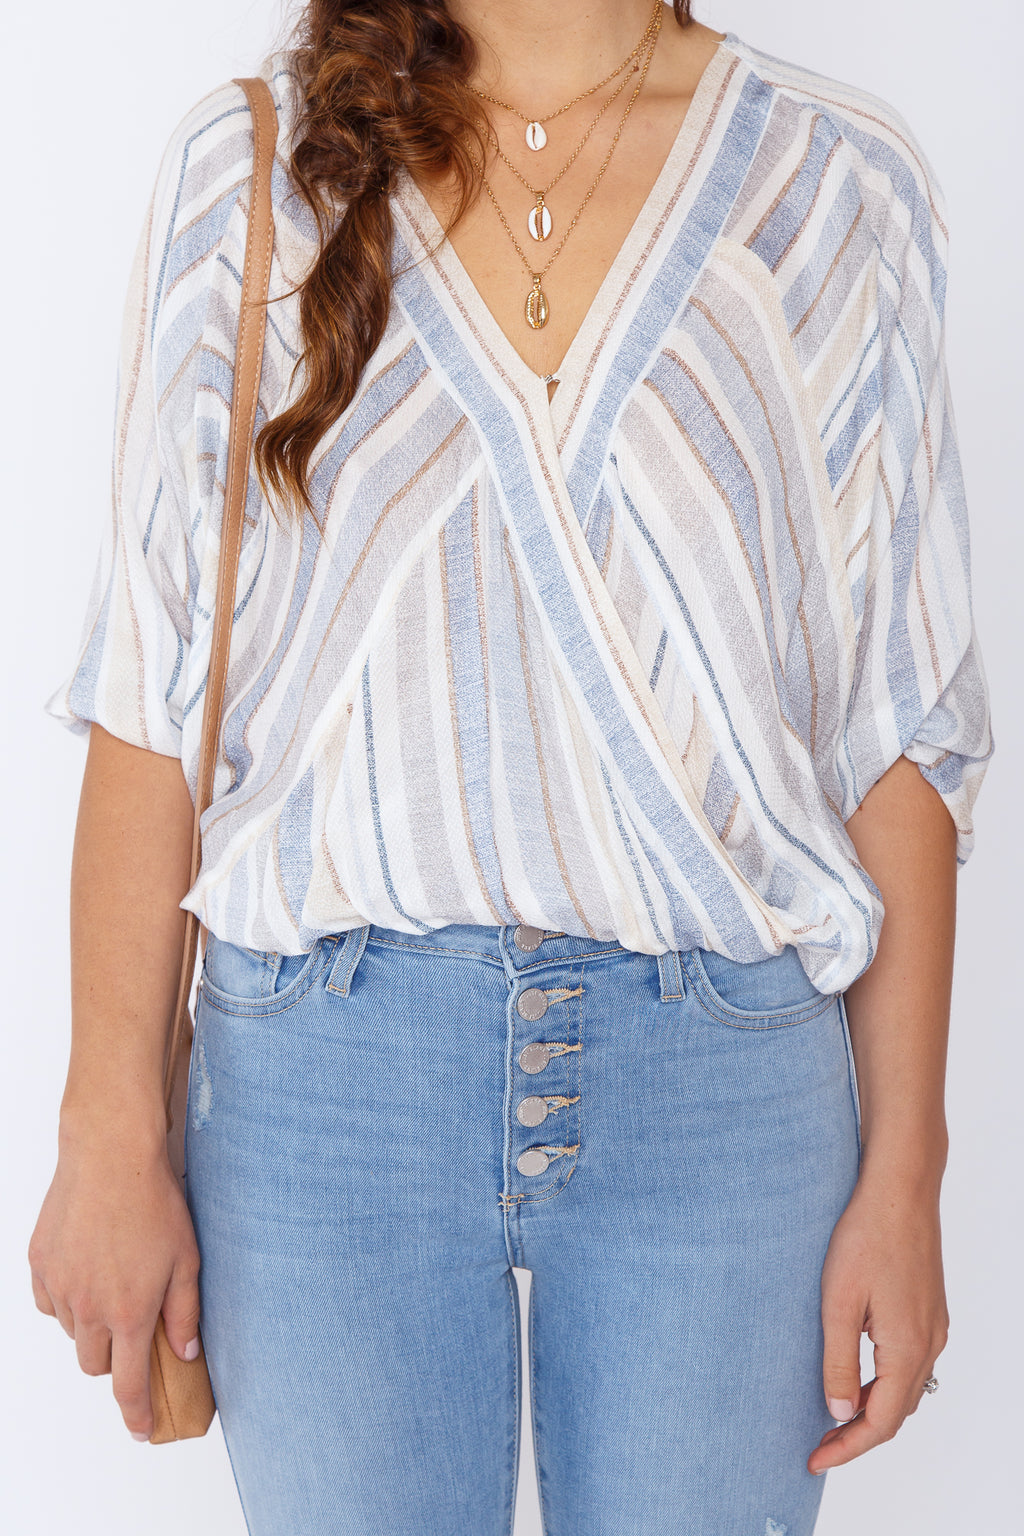 Roxy Striped Surplice Top